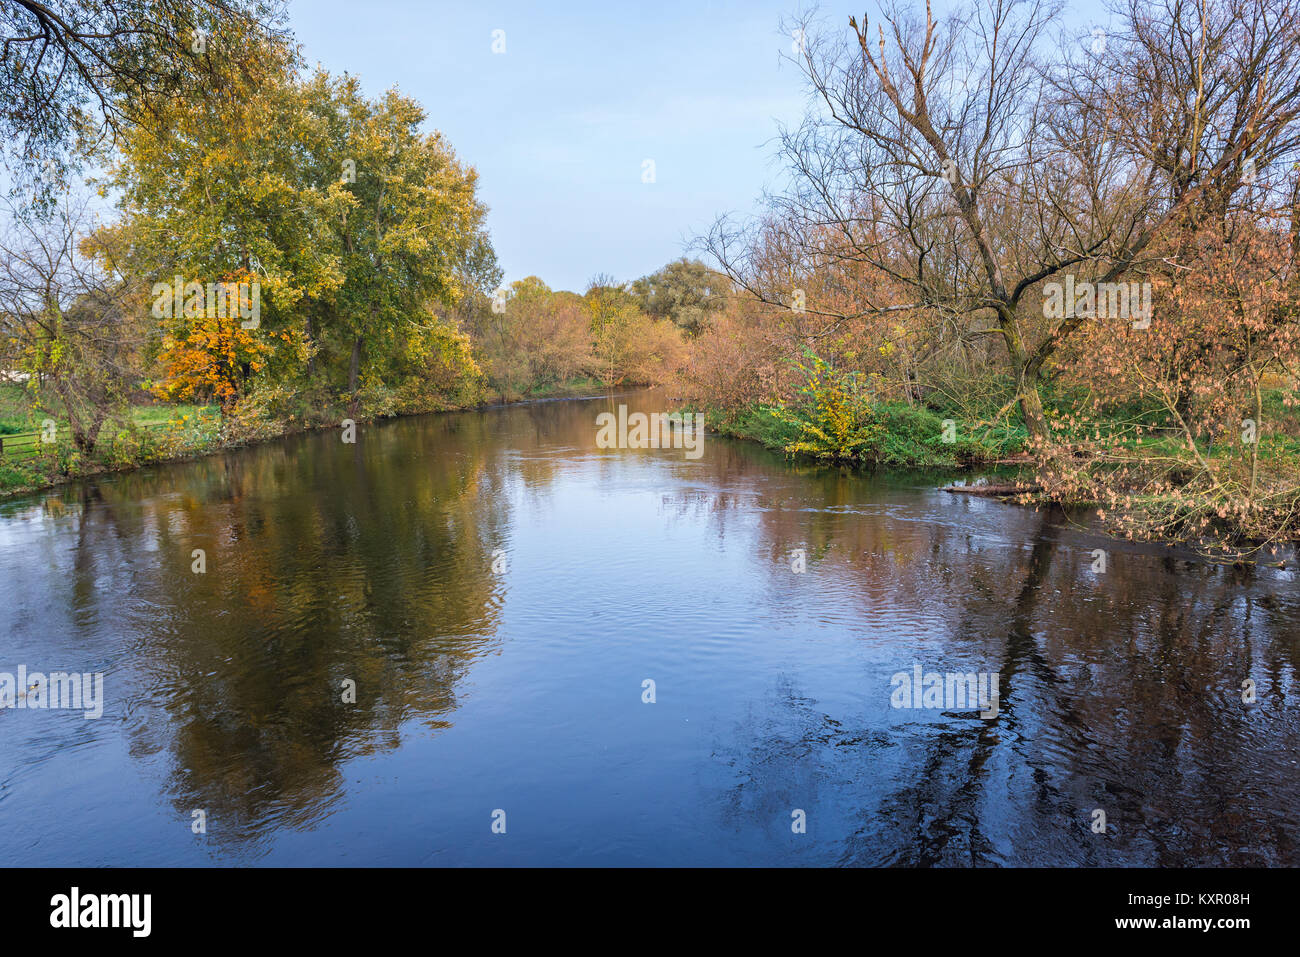 Bzura River in Witkowice village, Sochaczew County in Masovian Voivodeship of Poland - Stock Image